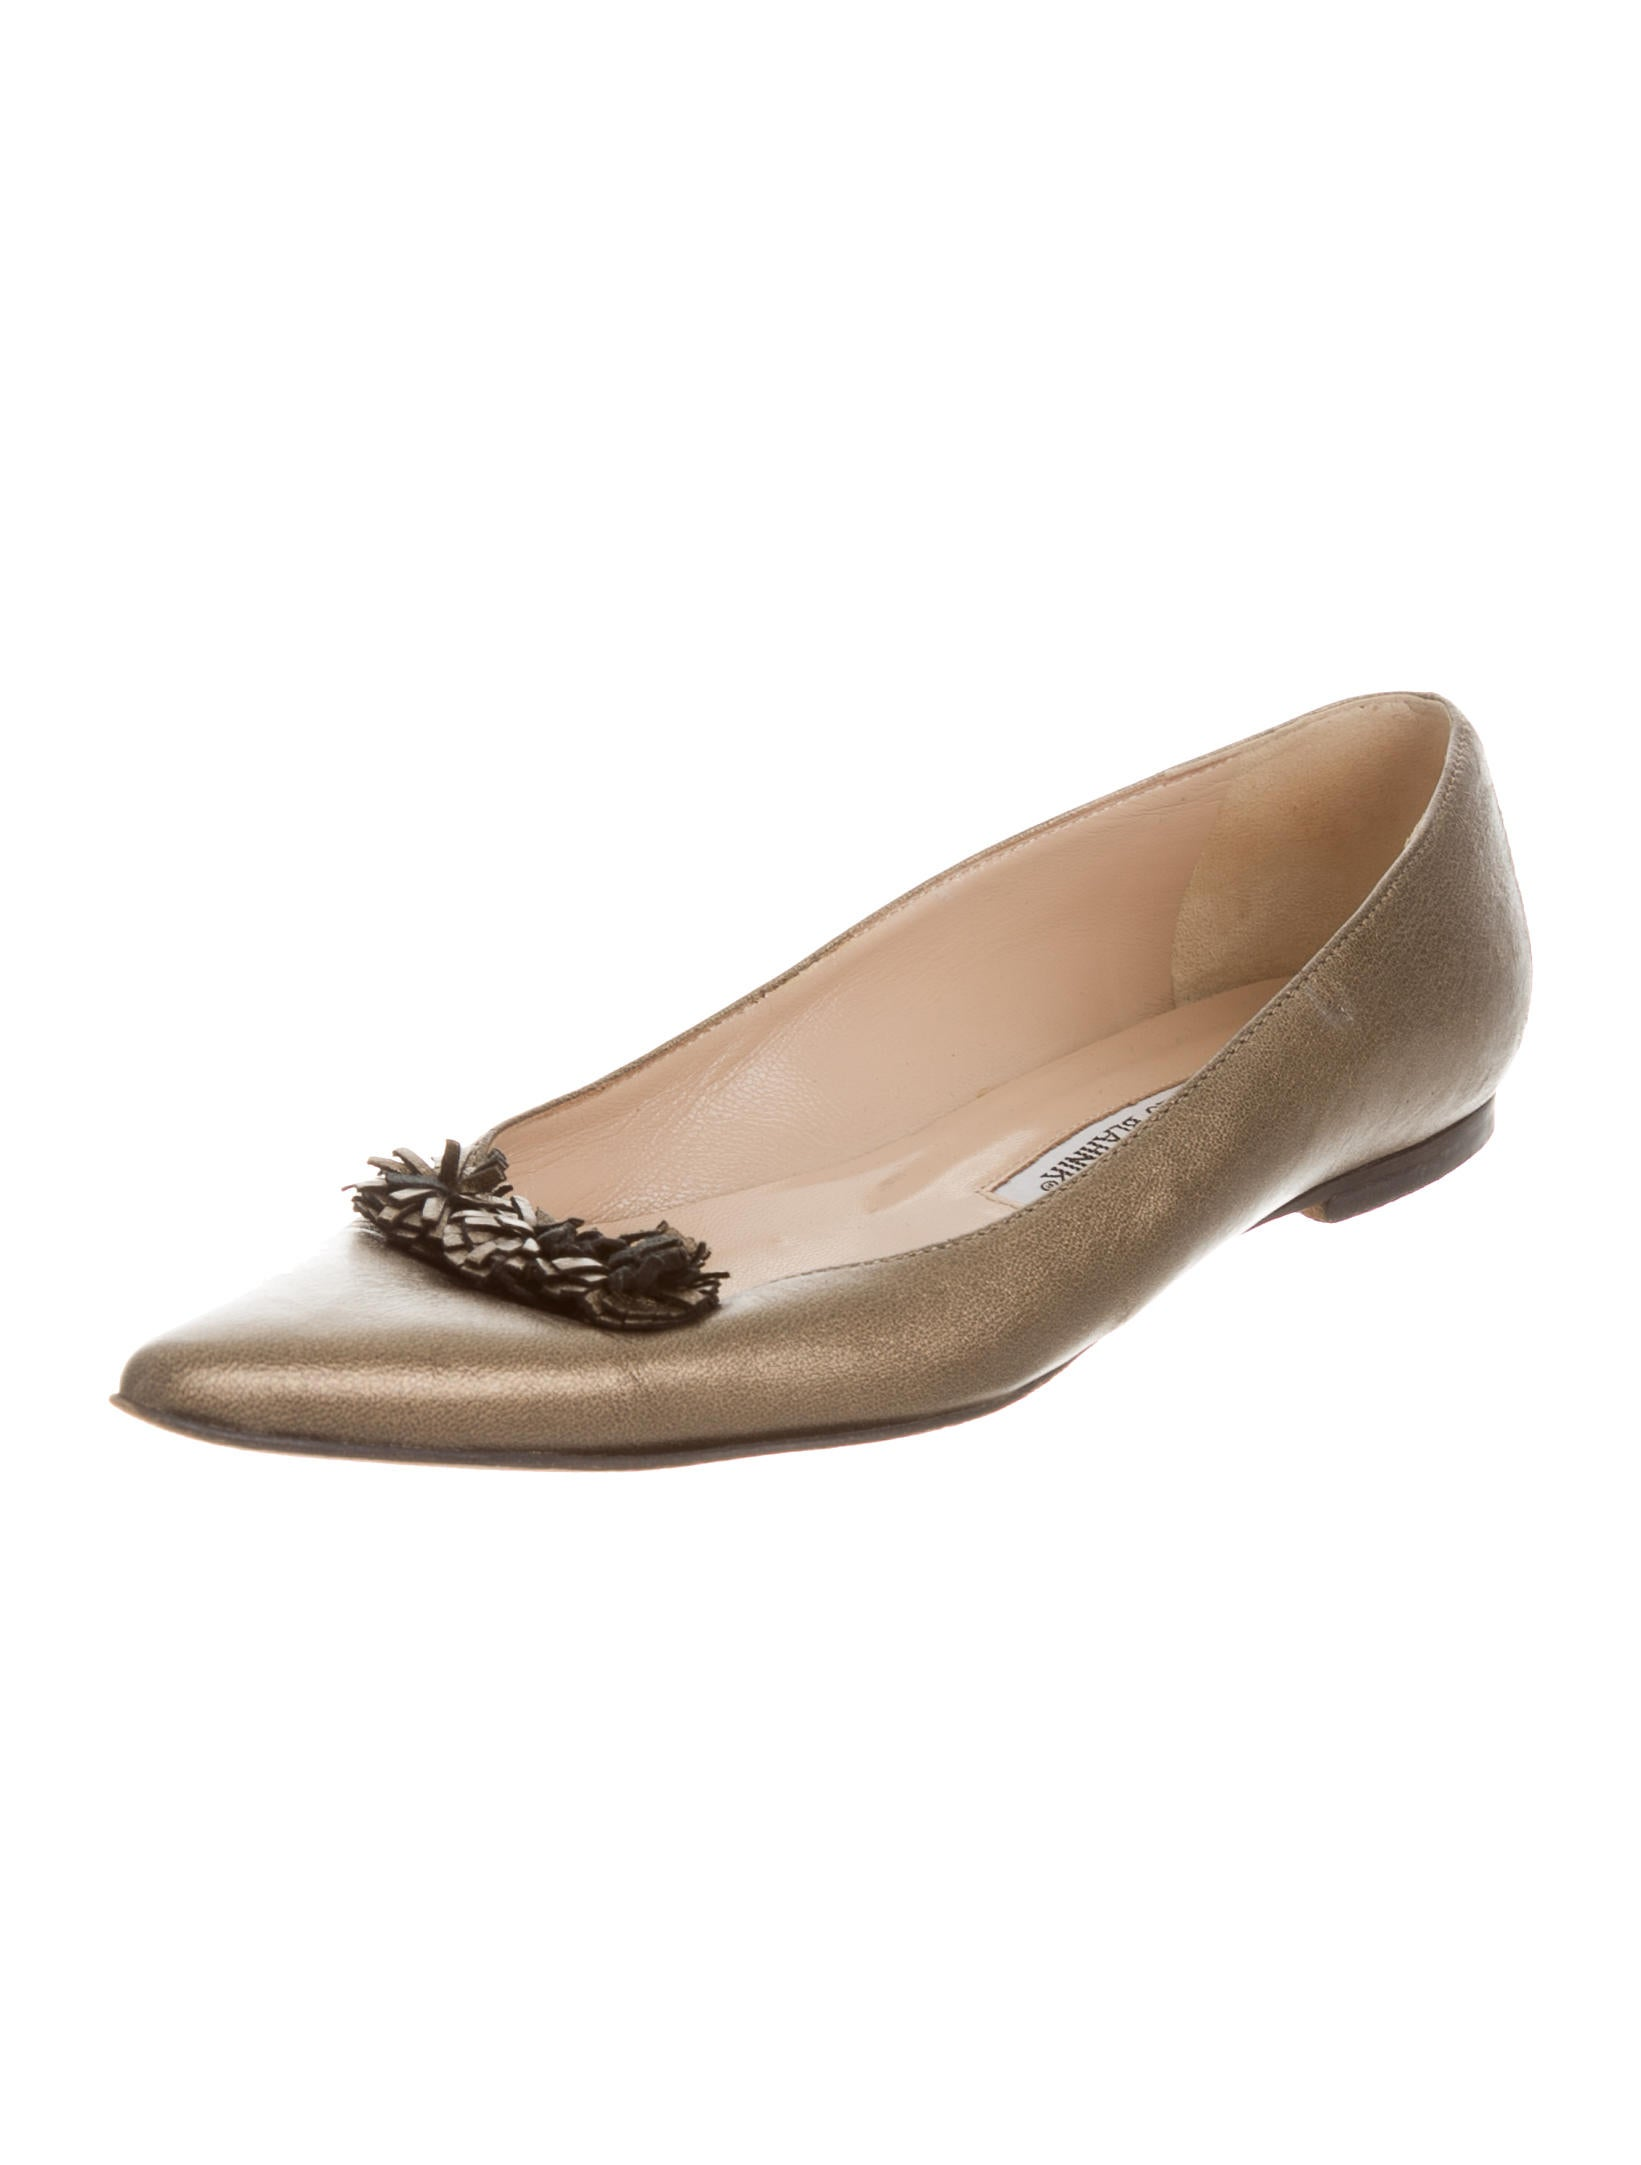 Manolo blahnik metallic pointed toe flats shoes for Shoes by manolo blahnik